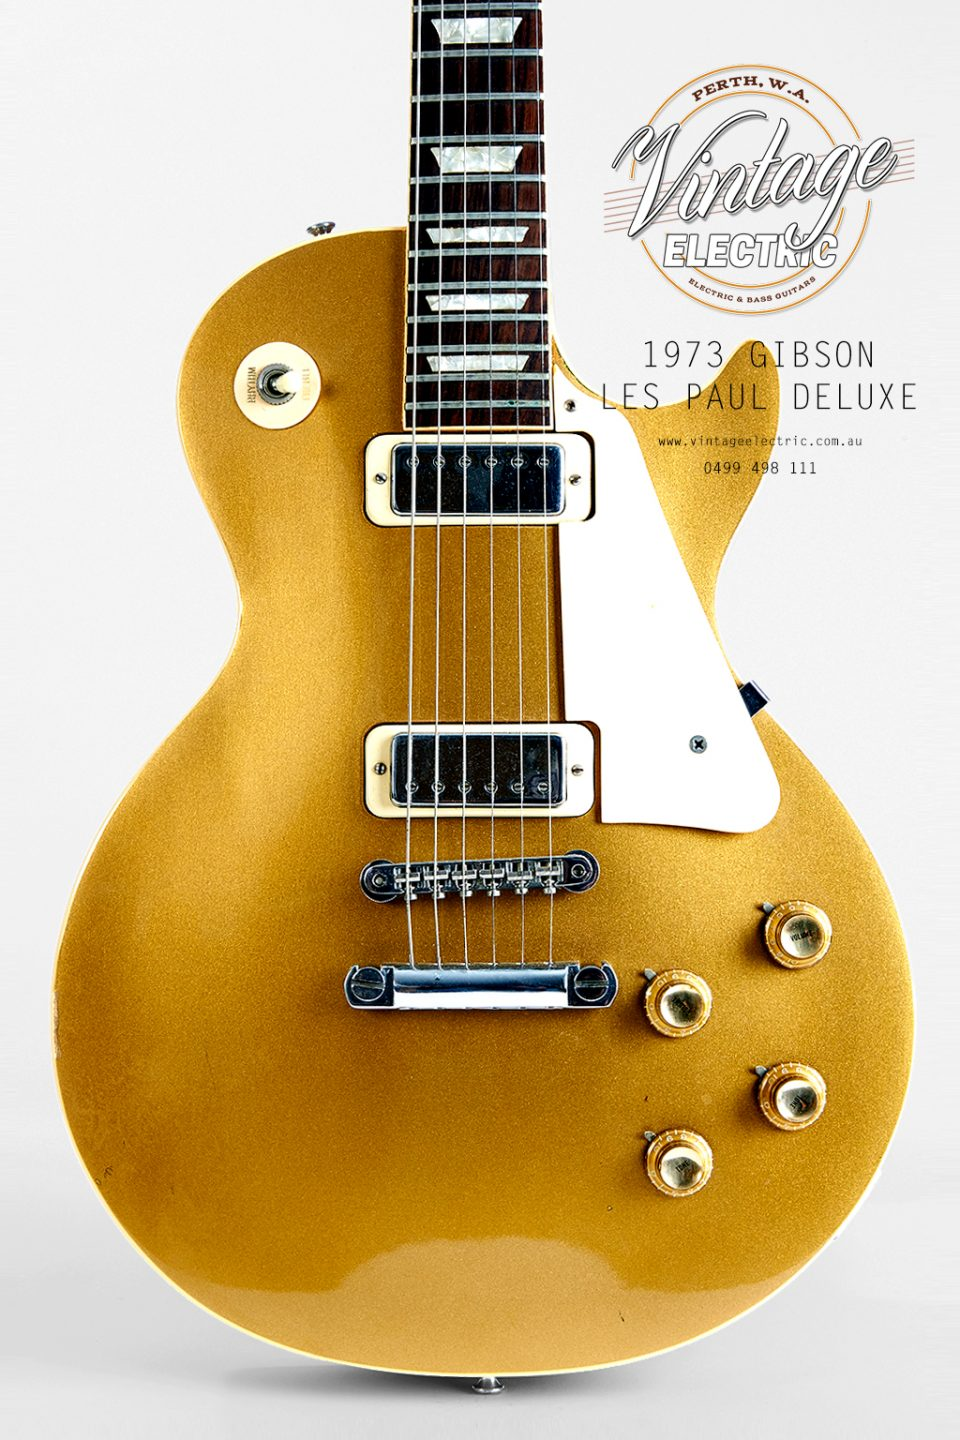 1973 Gibson Les Paul Deluxe Goldtop USA Body